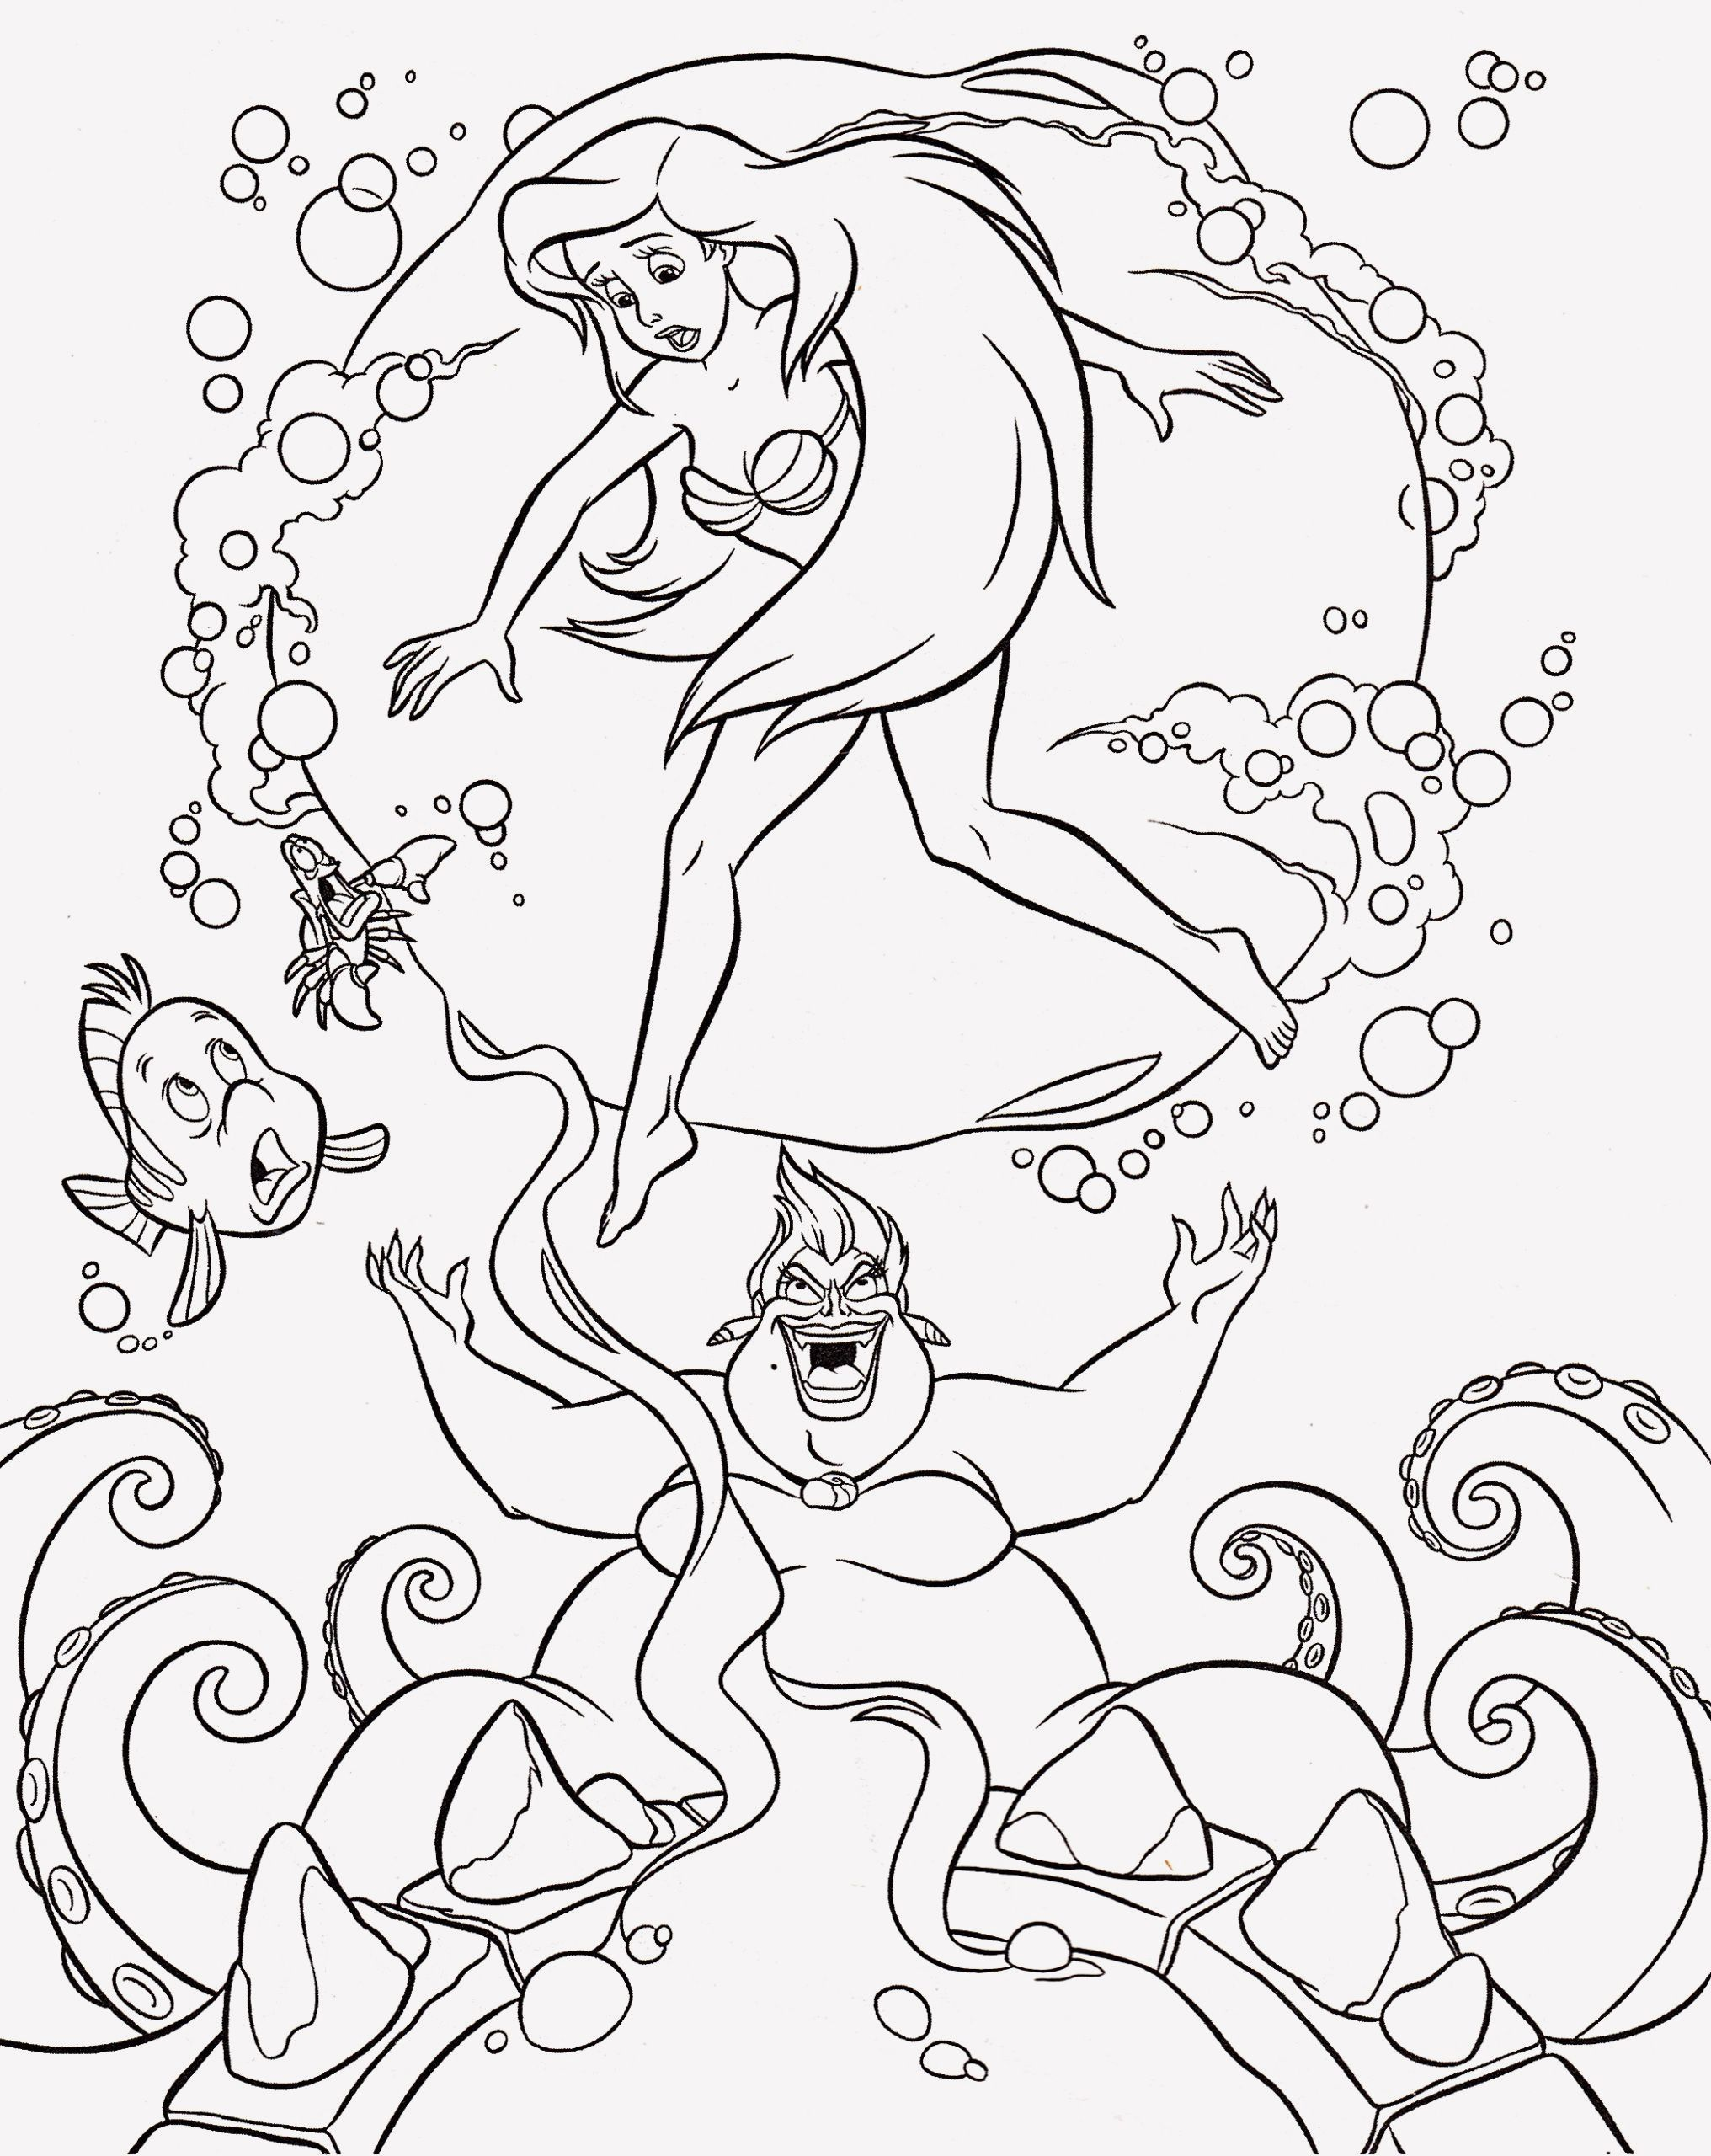 19 Disney Ursula Coloring Pages Ariel Coloring Pages Disney Princess Coloring Pages Disney Coloring Pages